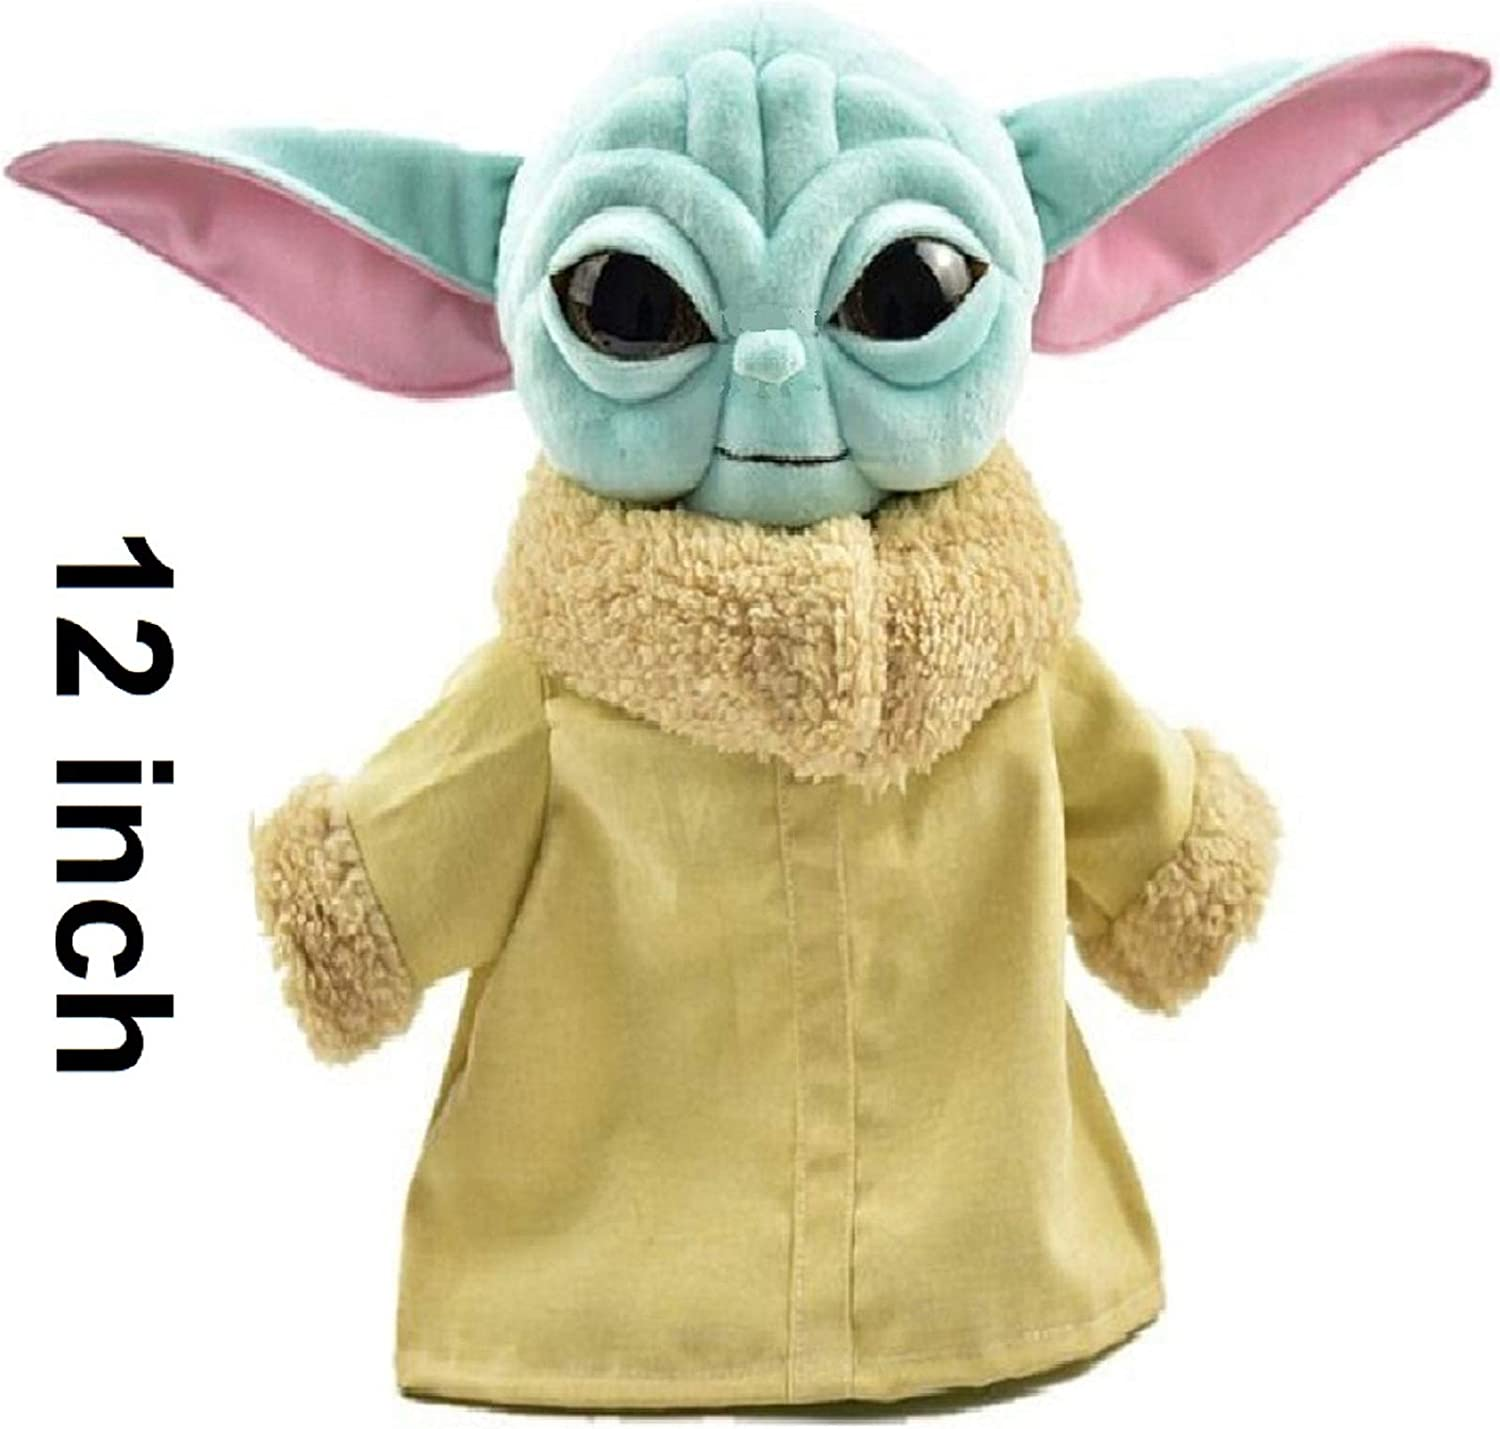 Star Wars Disney Baby Yoda Plush Toy The Baby Mandalorian Child Yoda Stuffed Doll With Removable Coat 30cm Animals Amazon Canada